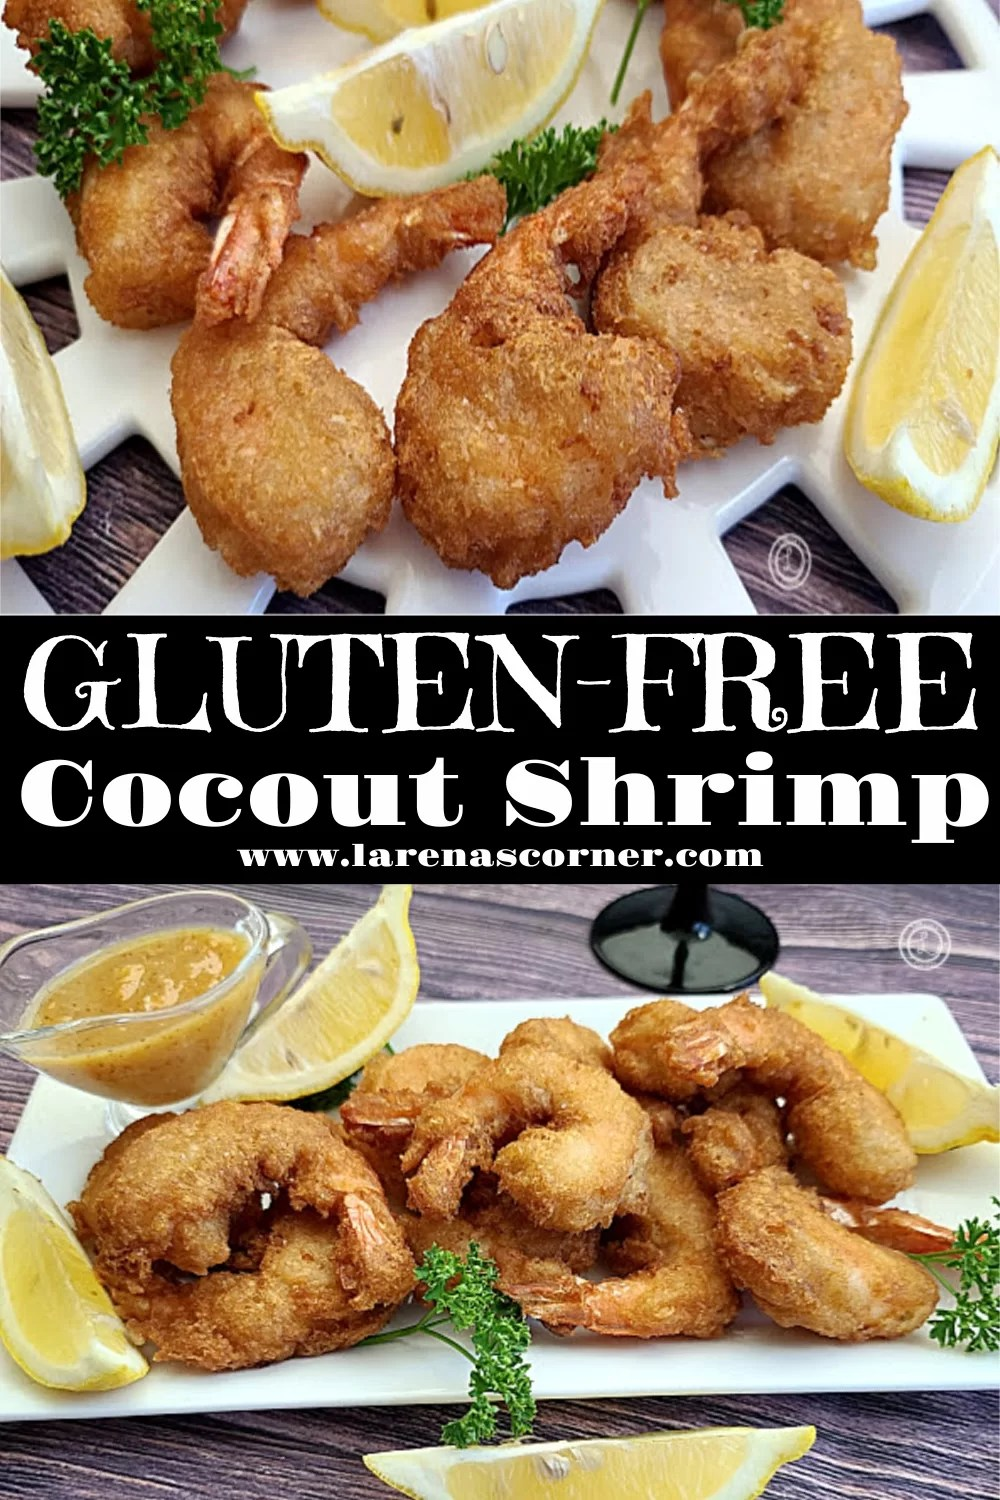 2 pictures of cooked Gluten-Free Coconut Shrimp